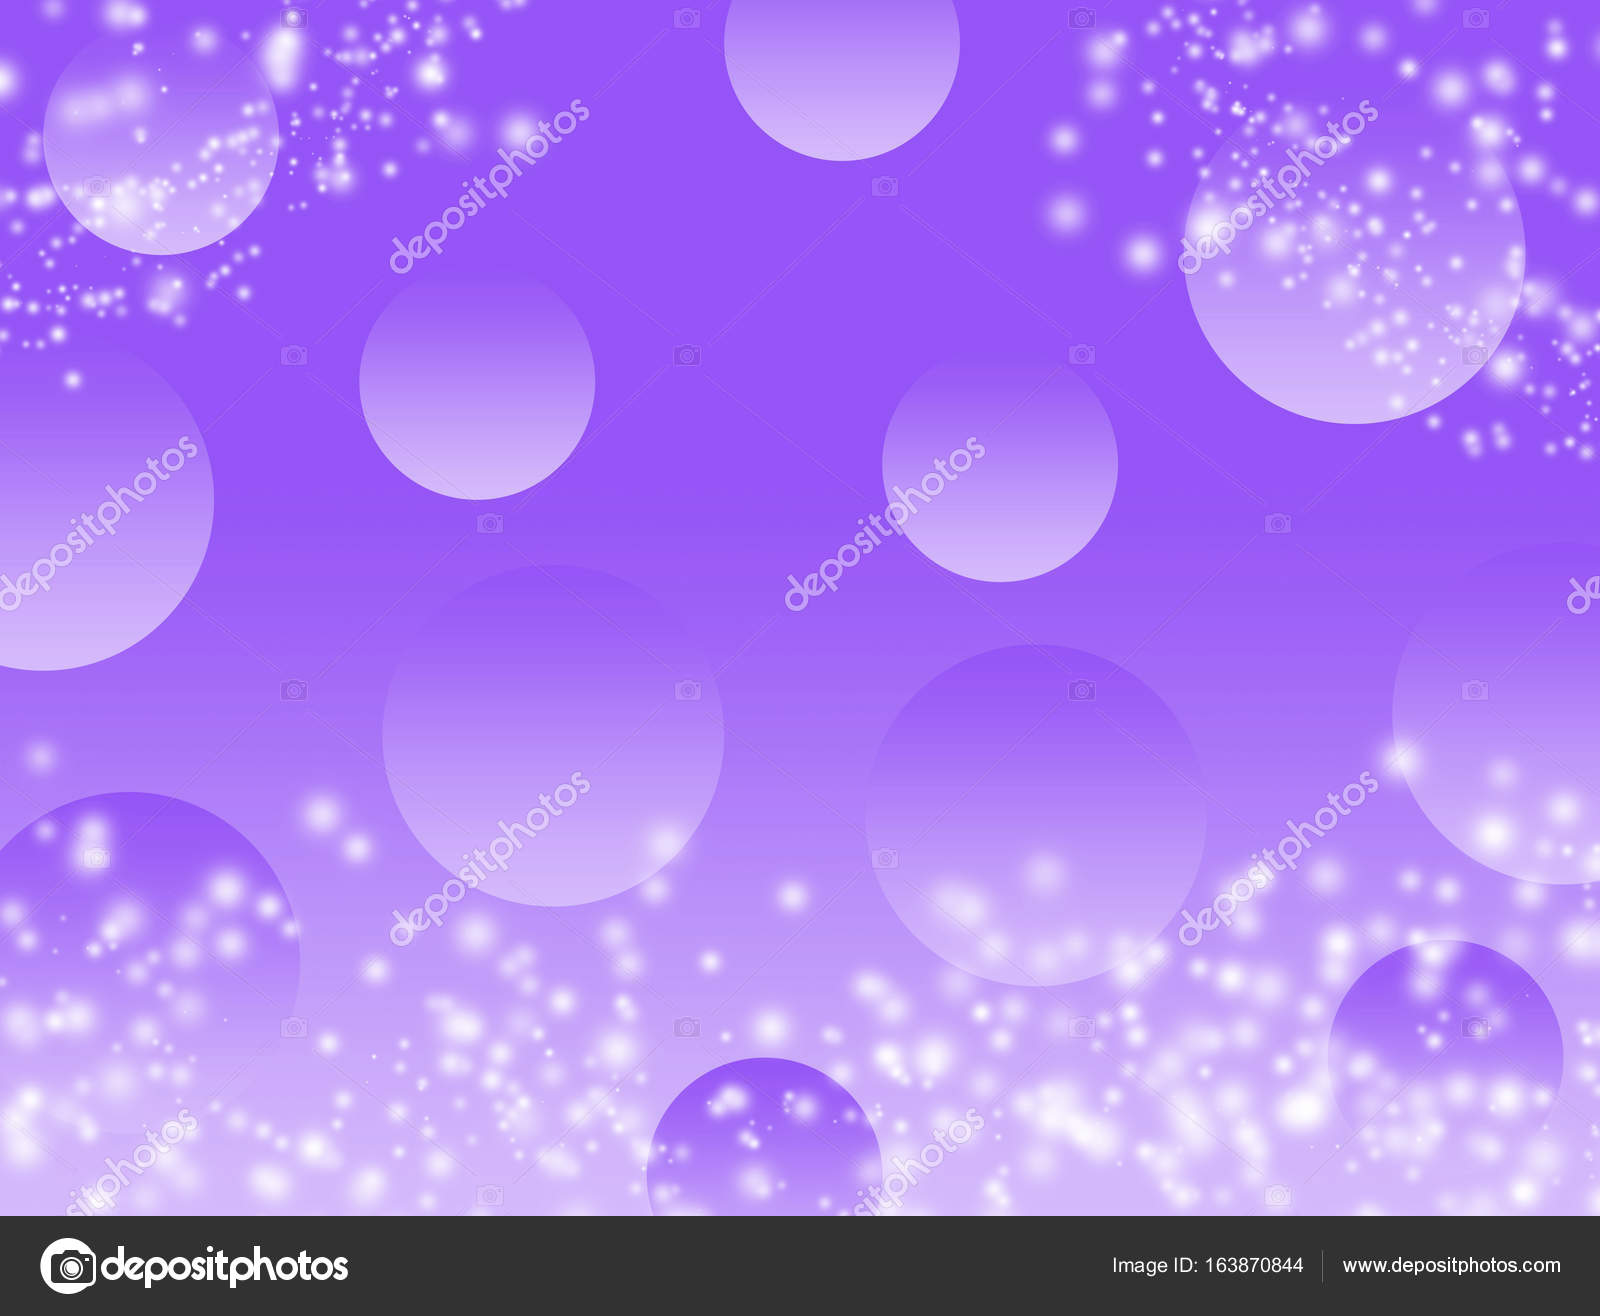 Bokeh Abstract Background Wallpaper Glitter Diamond For Wedding And Christmas Festival Concept Copy Space Photo By Nattanan Siahotmail